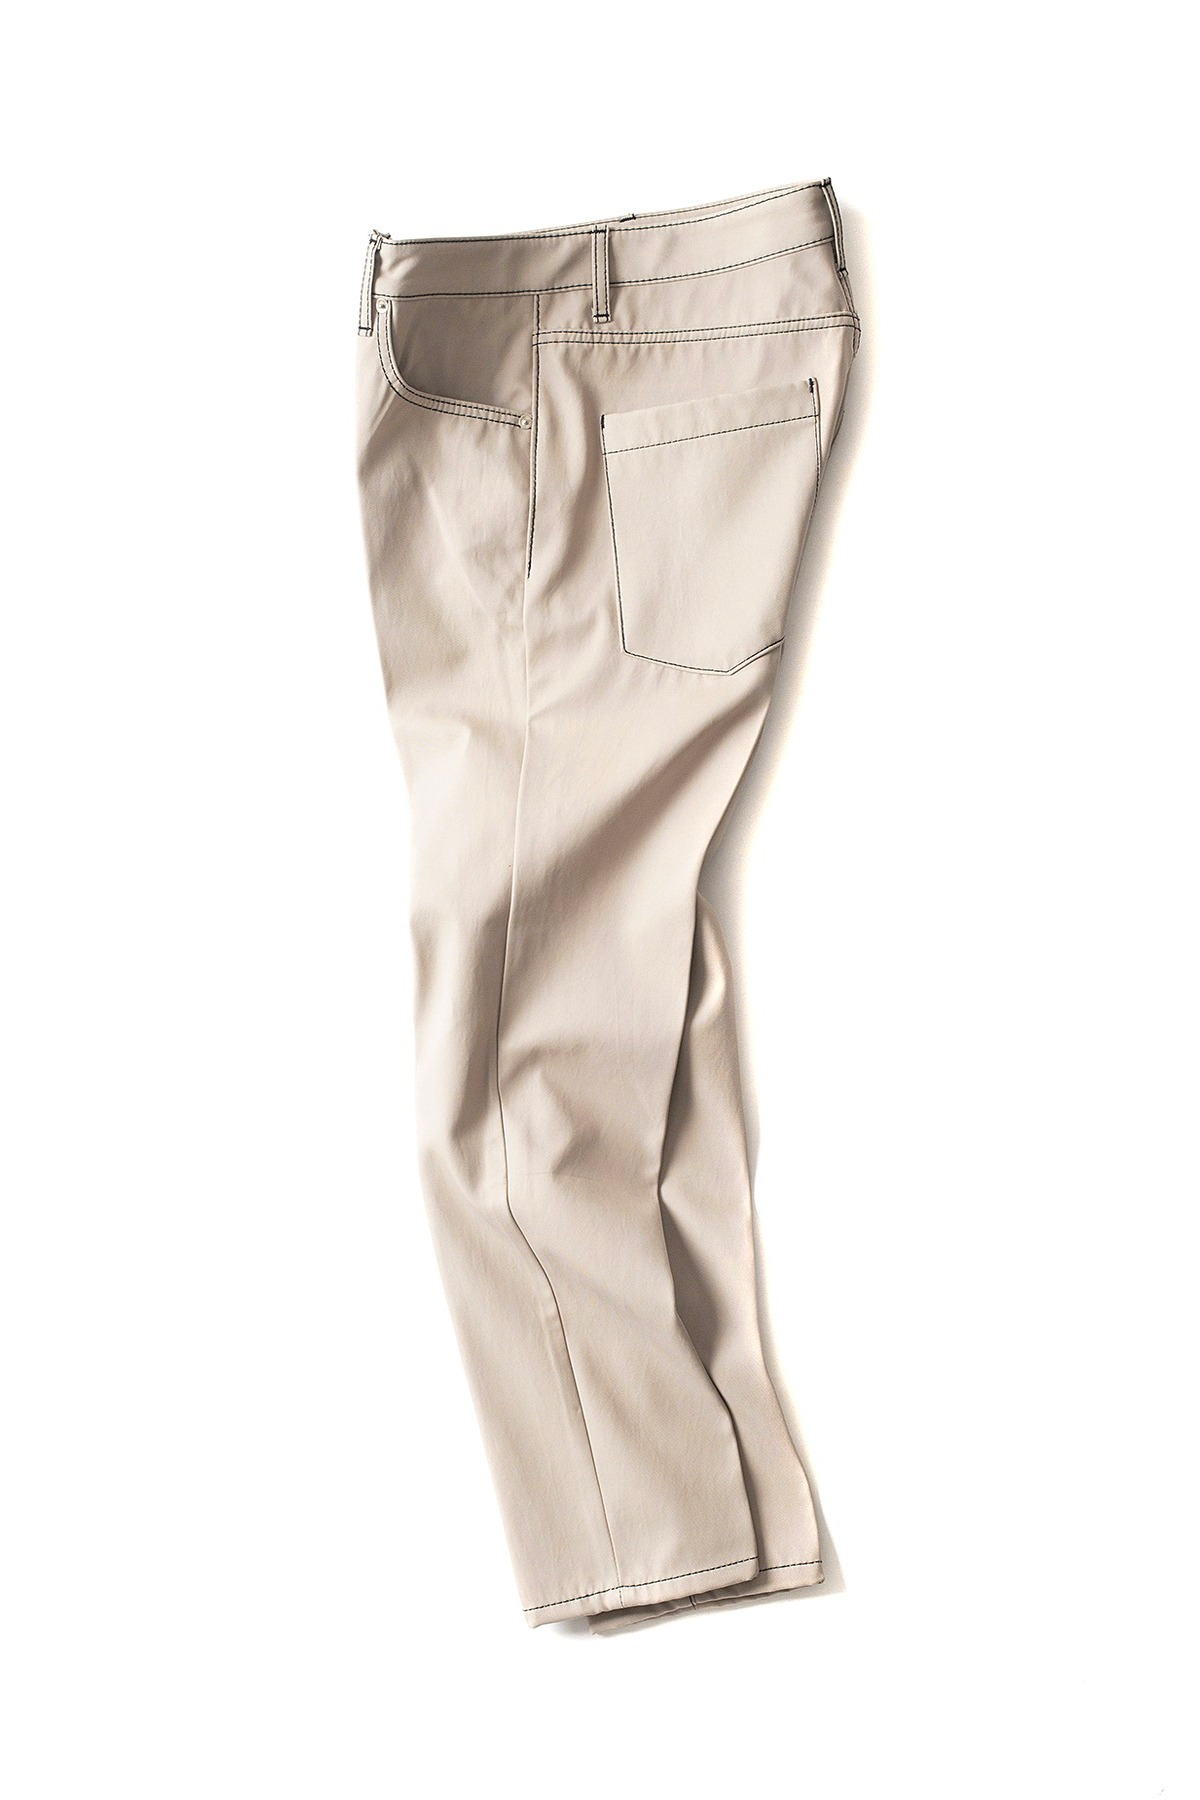 BIRTHDAYSUIT : Slim Fit 5Pocket Pants (Beige)